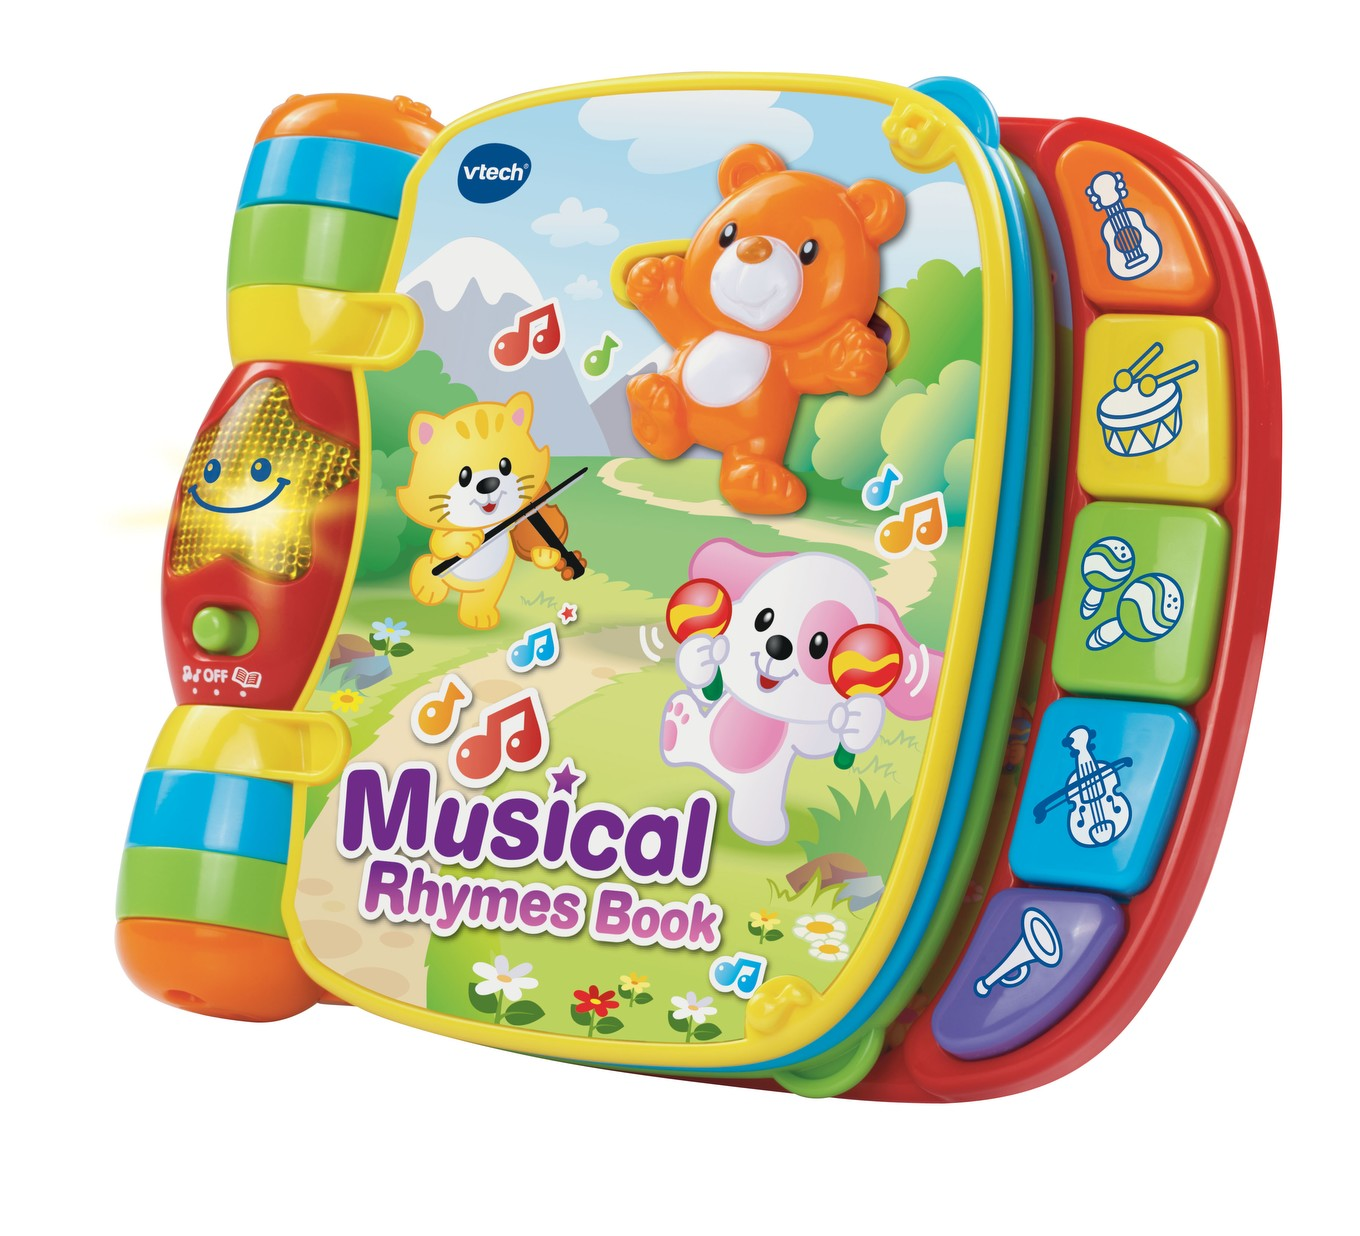 VTech Baby Musical Rhymes Book - VTech Toys Australia